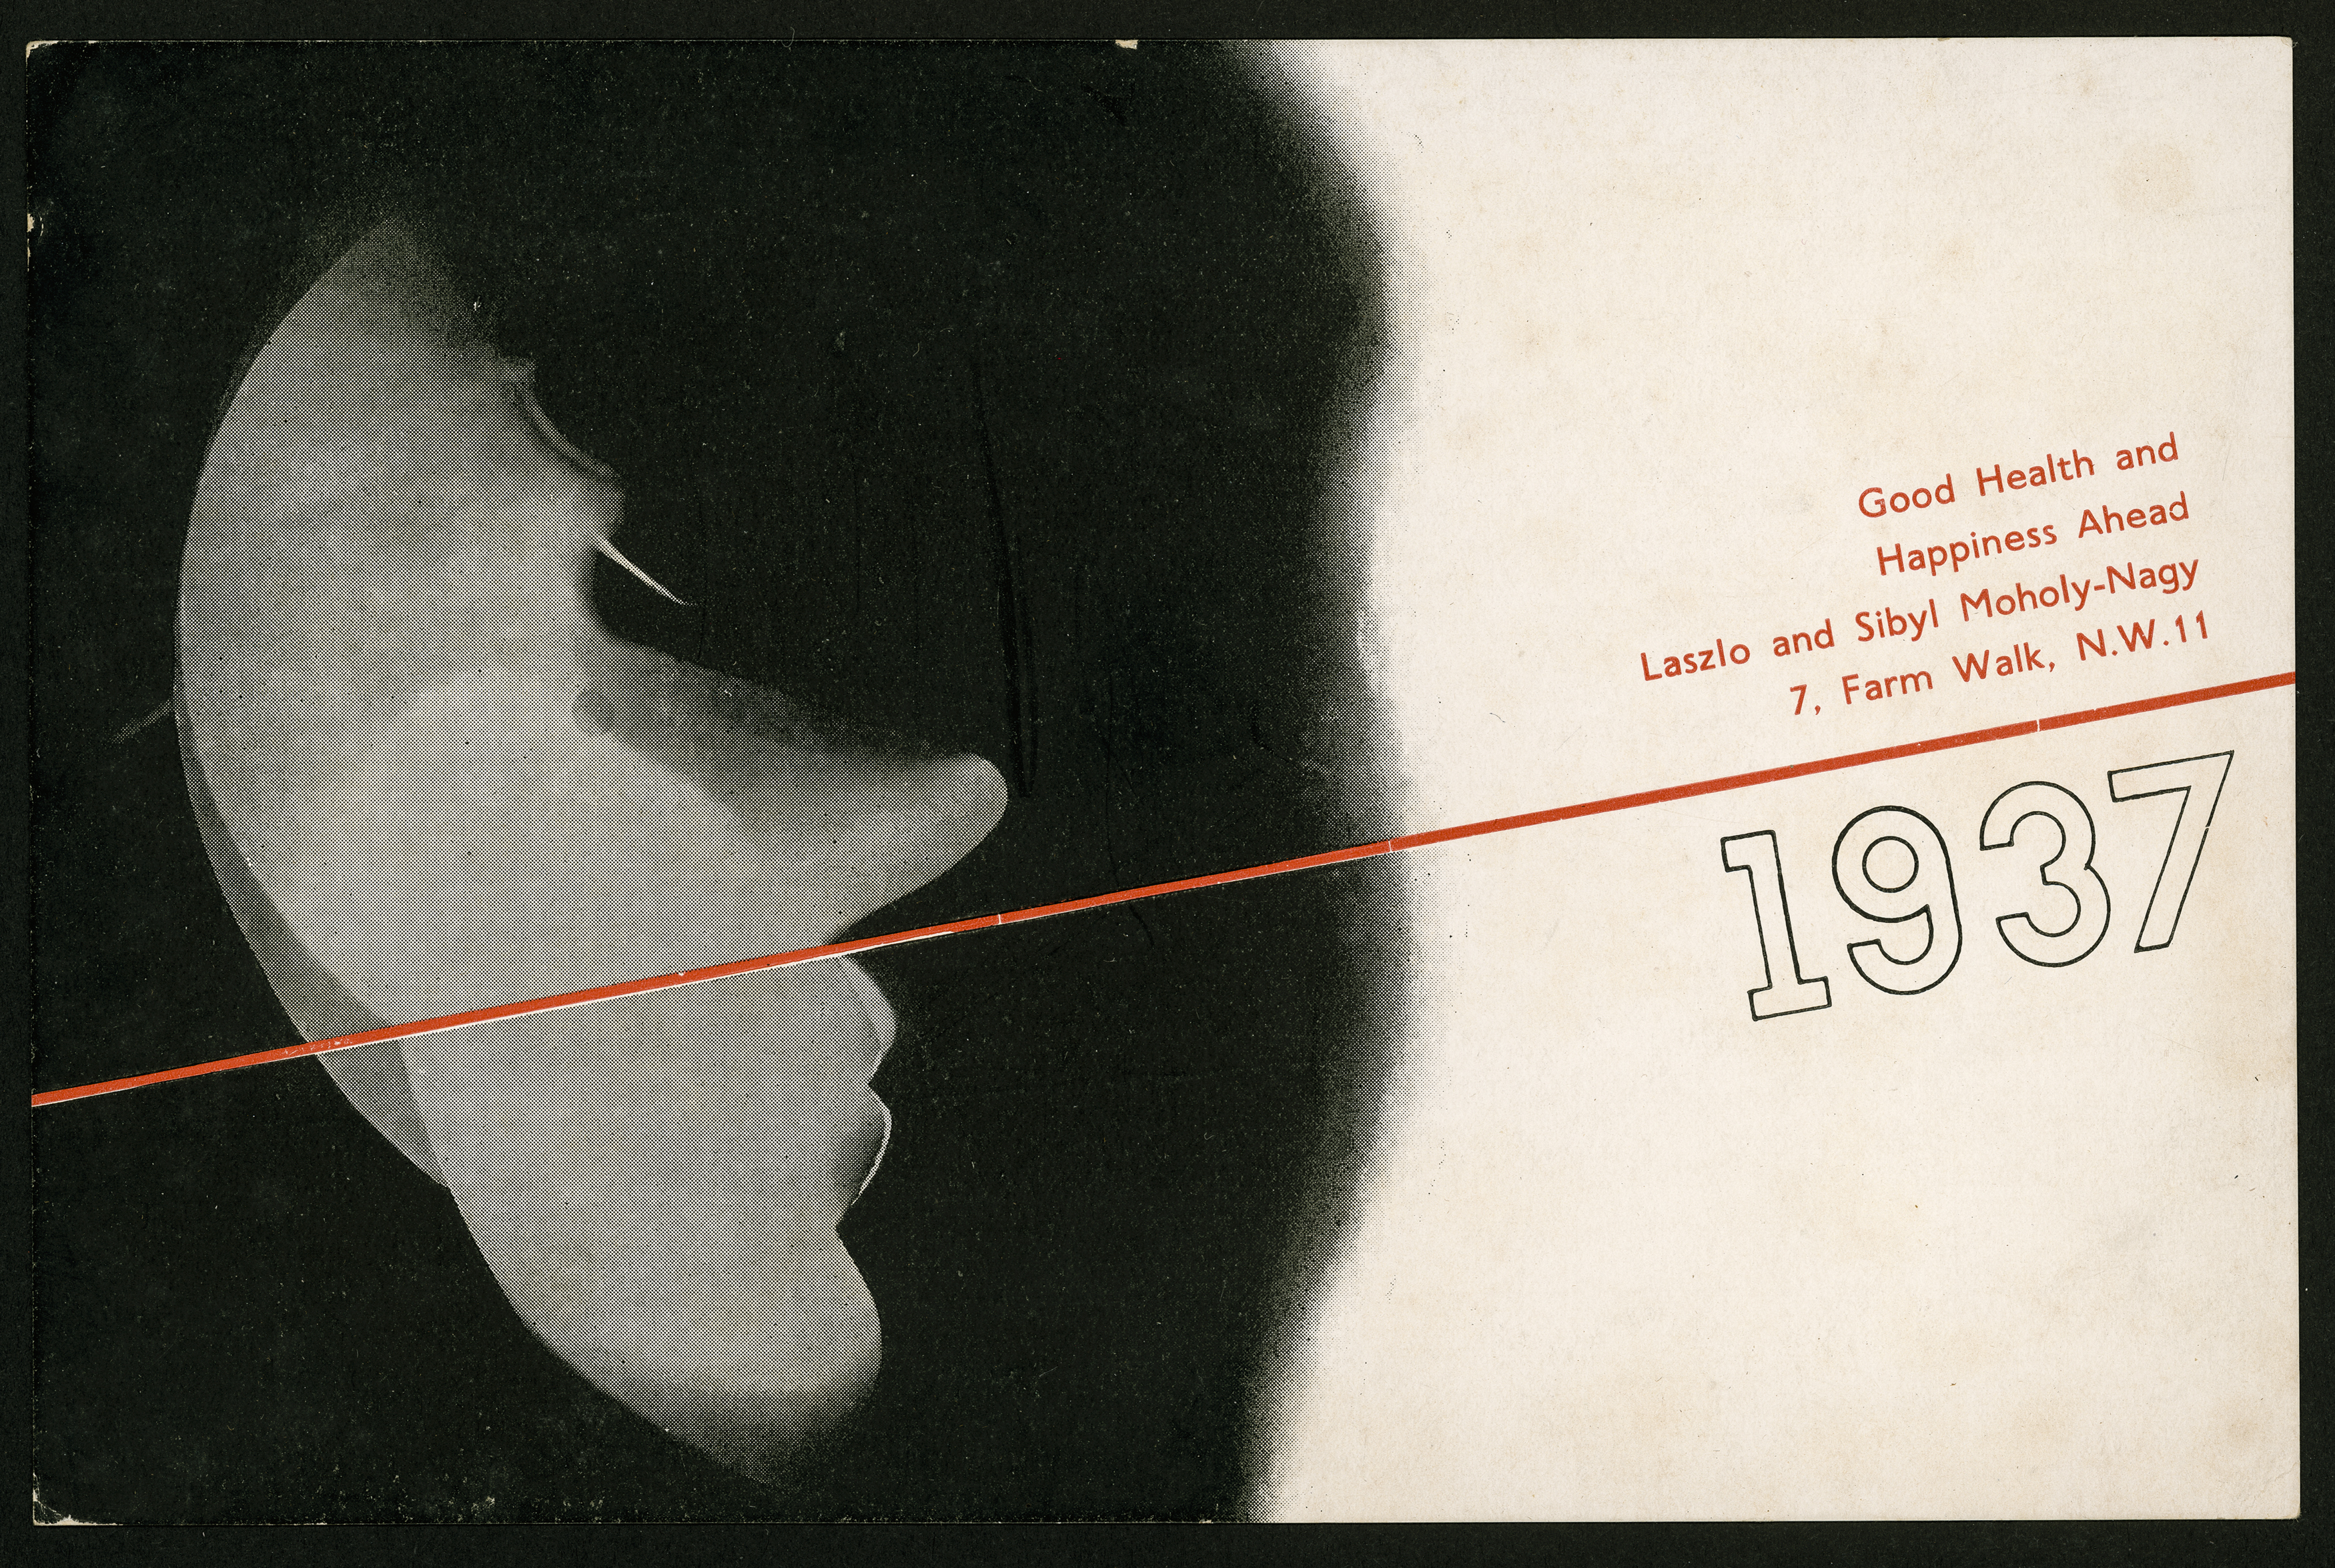 Black and white postcard with a stylised profile of a face on the left, and red and black text on the right which reads: Good Health and Happiness Ahead / Laszlo and Sybil Moholy-Nagy / 7, Farm Walk, N.W. 11 / 1937.